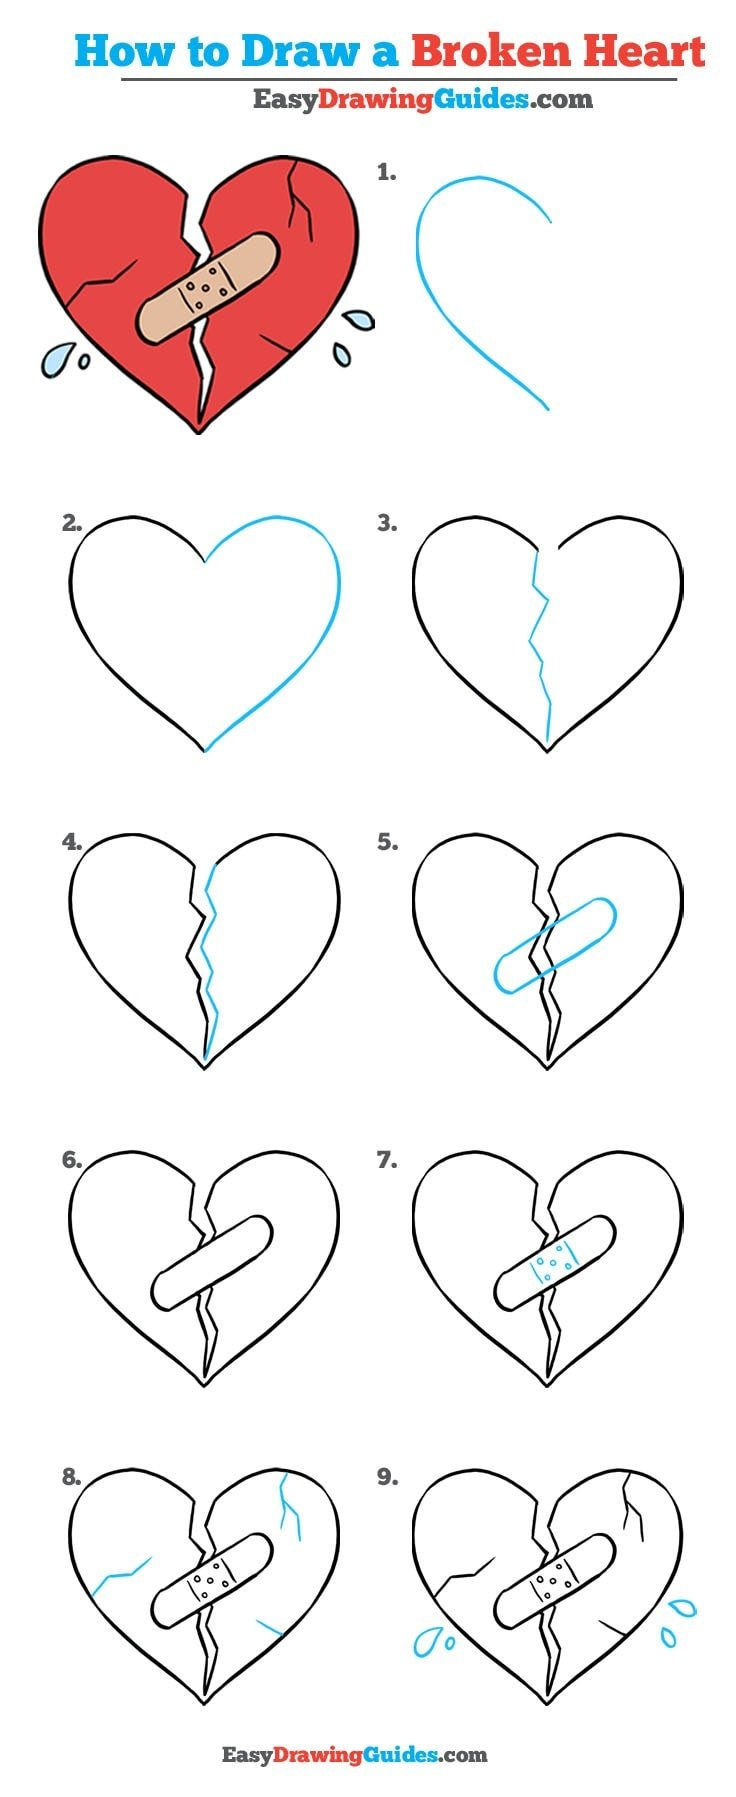 Broken Heart Really Easy Drawing Tutorial